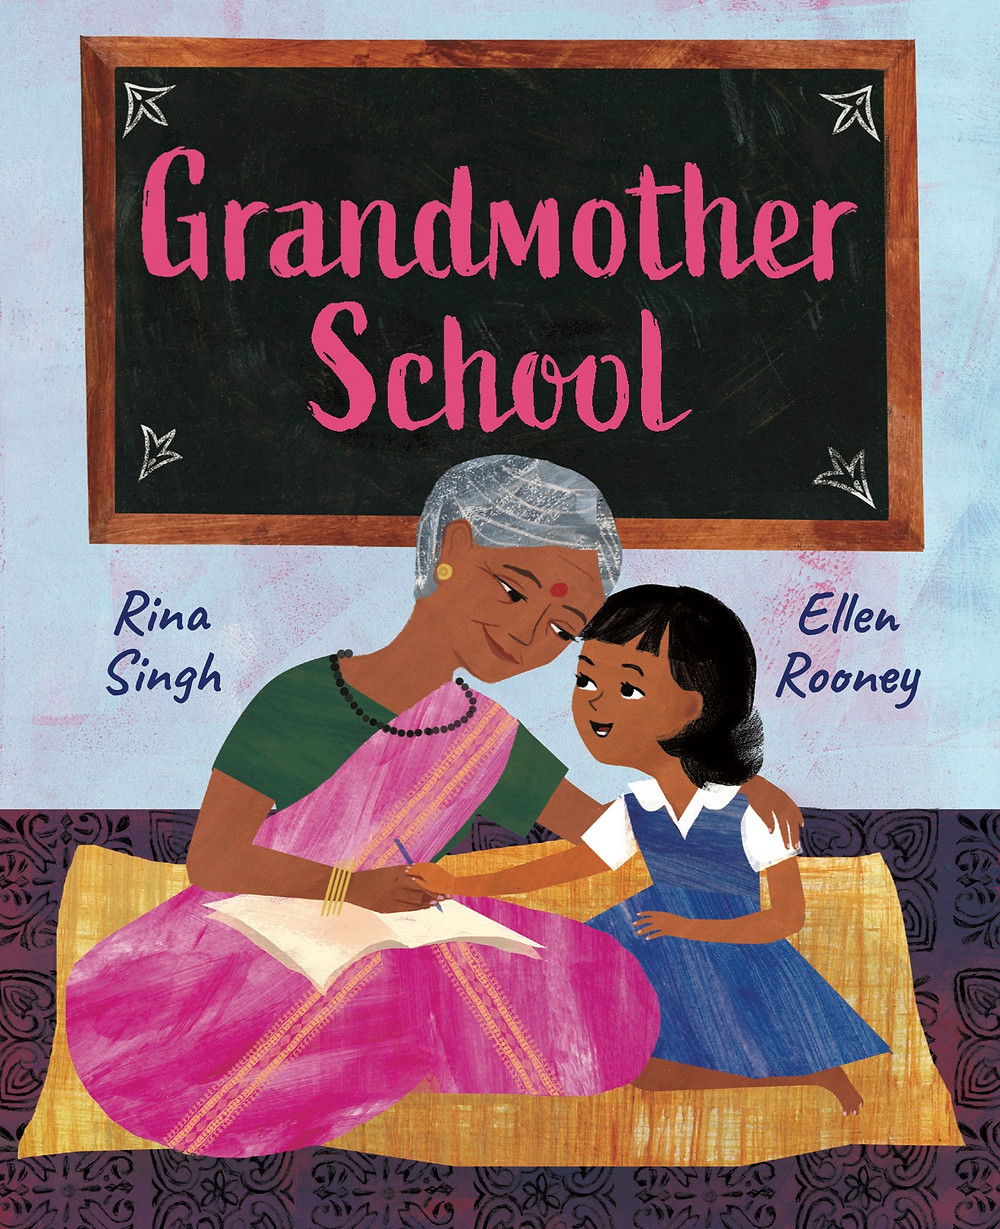 Coming May 5th in book stores and Amazon. A little about Grandmother School -  Every morning, a young girl walks her grandmother to the Aajibaichi Shala, the school that was built for the grandmothers in her village to have a place to learn to read and write. The narrator beams with pride as she drops her grandmother off with the other aajis to practice the alphabet and learn simple arithmetic. A moving story about family, women and the power of education—when Aaji learns to spell her name you'll want to dance along with her. Women in countless countries continue to endure the limitations of illiteracy. Unjust laws have suppressed the rights of girls and women and kept many from getting an education and equal standing in society. Based on a true story from the village of Phangane, India, this brilliantly illustrated book tells the story of the grandmothers who got to go to school for the first time in their lives.